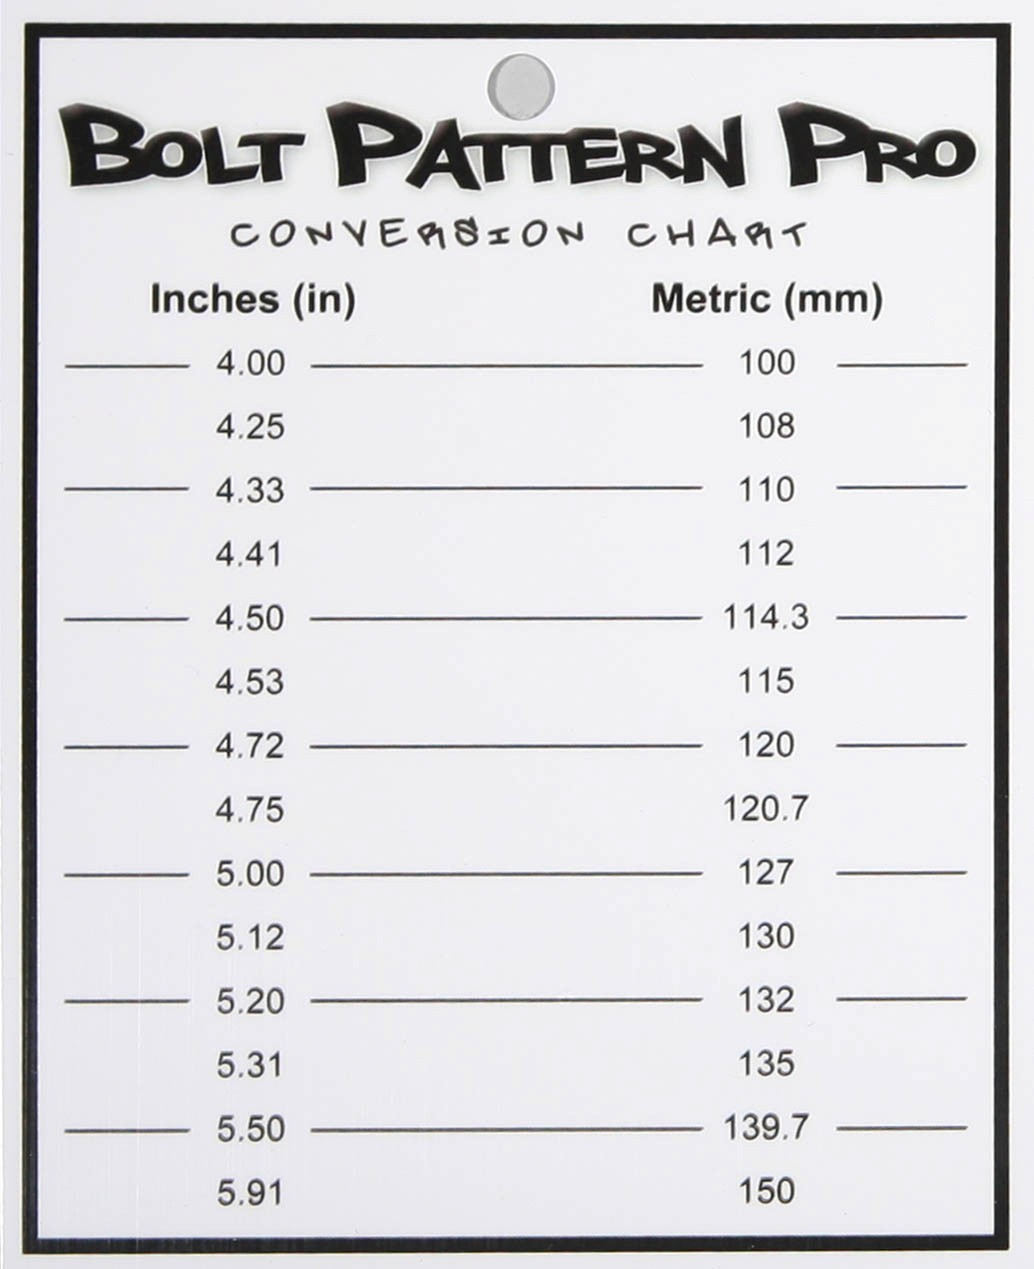 Bolt Pattern Pro Receives Patent Approval For Innovation In Wheel Rim Measurement